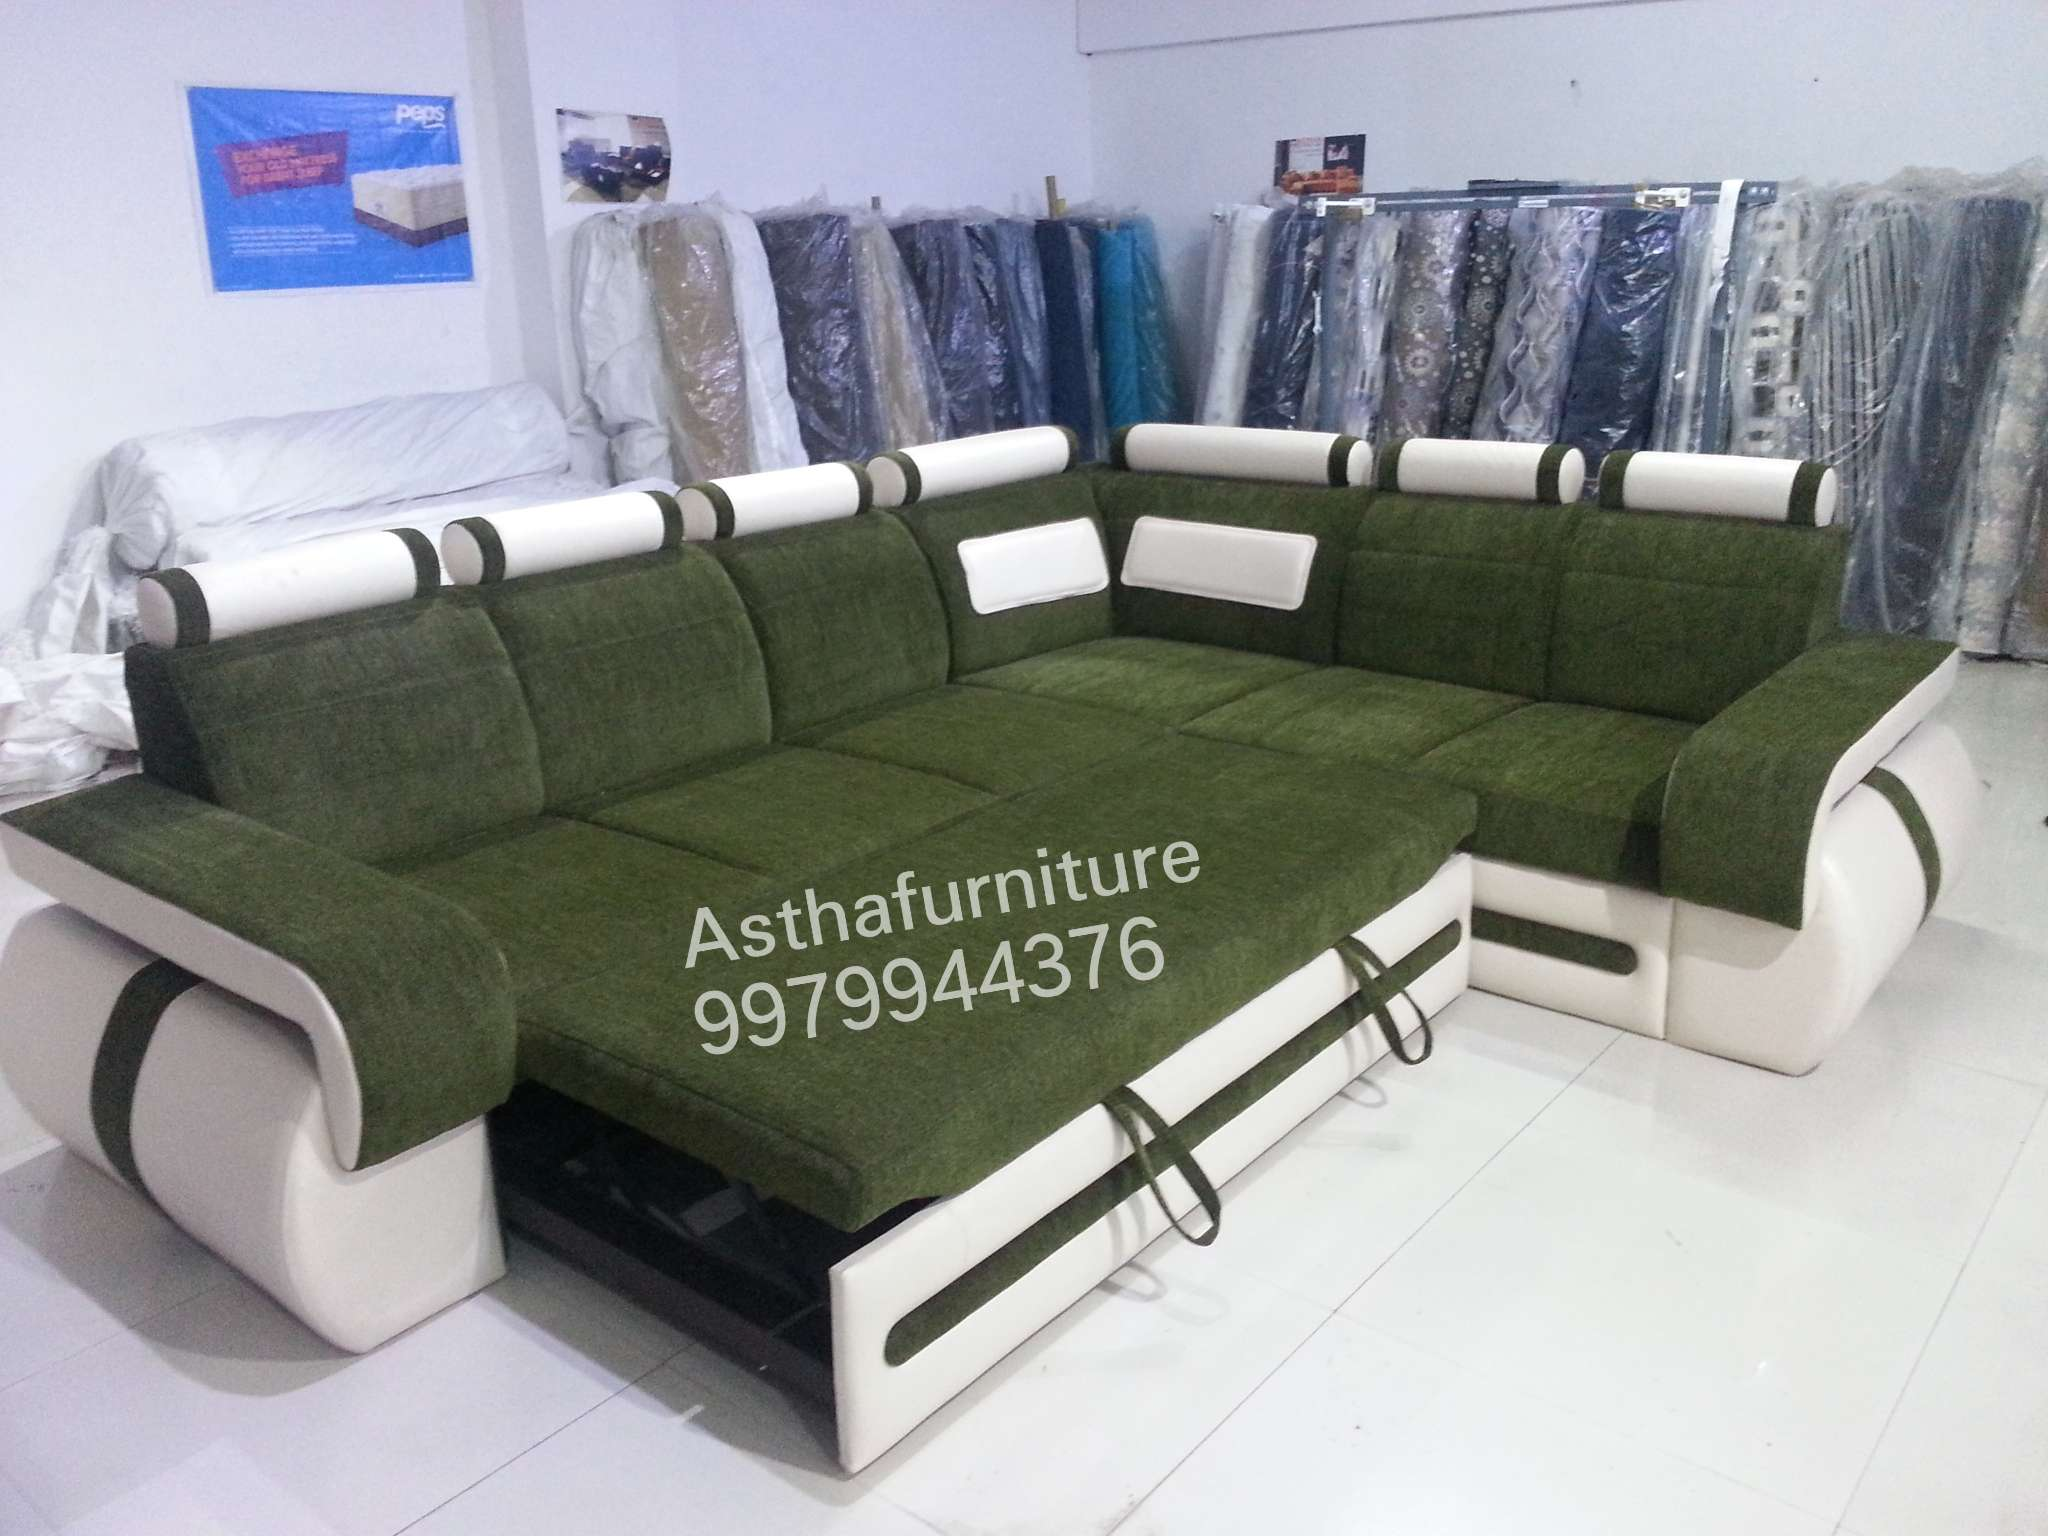 SOFA L SHAPE CUMBED FACTORY PRICE – Astha Furniture